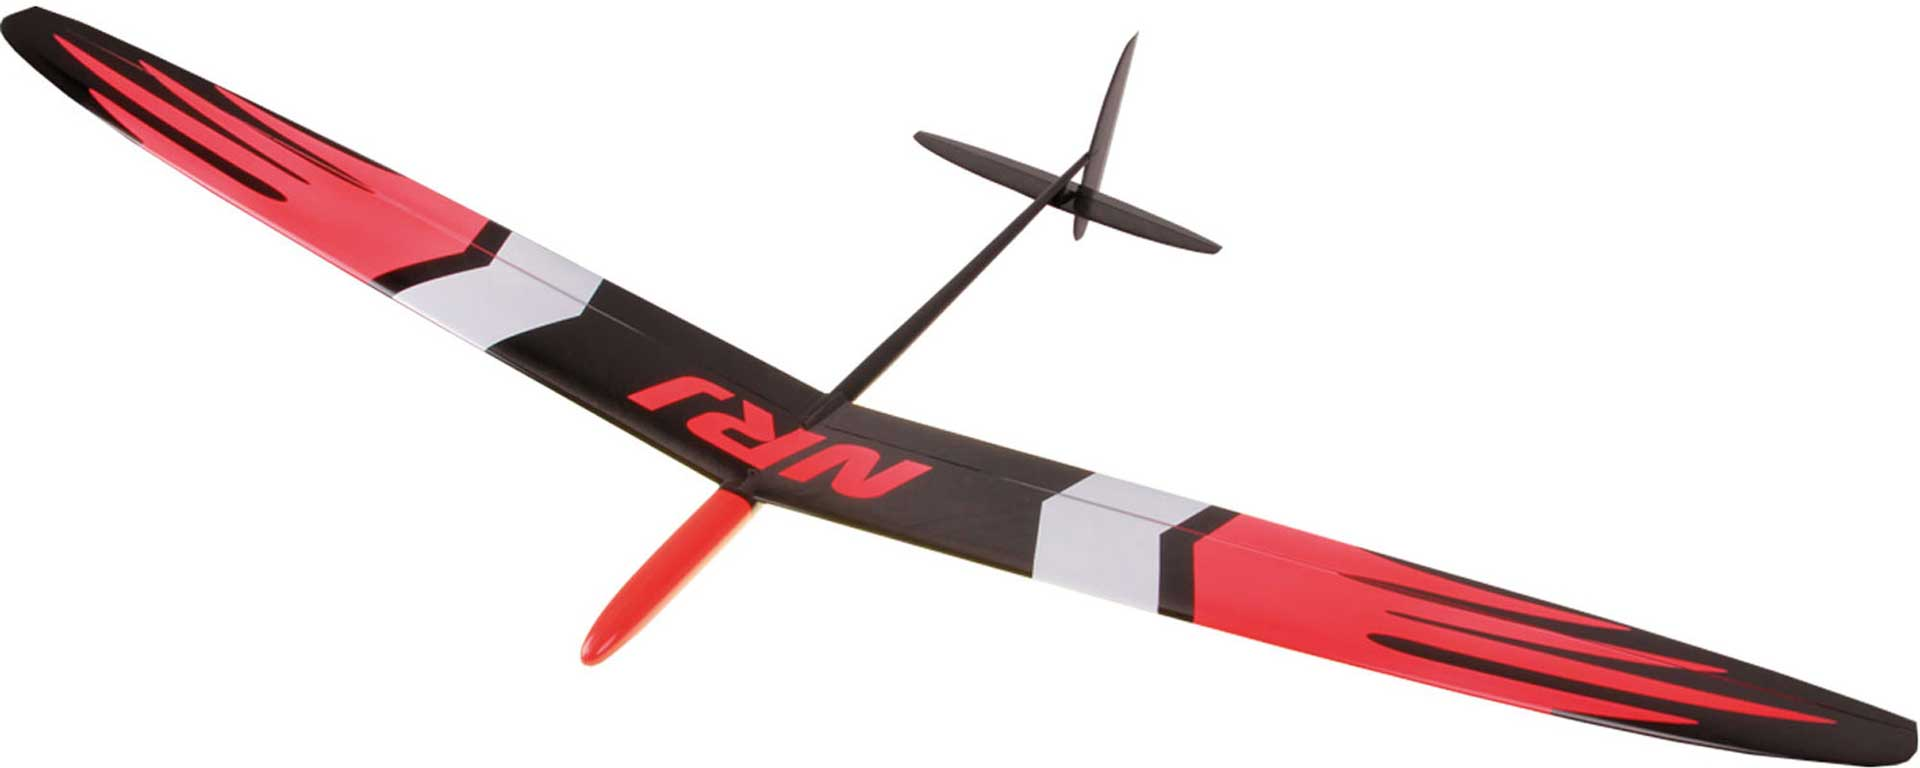 OA-COMPOSITES NRJ F3K RED# 2 CW40 CENTRIFUGAL GLIDER